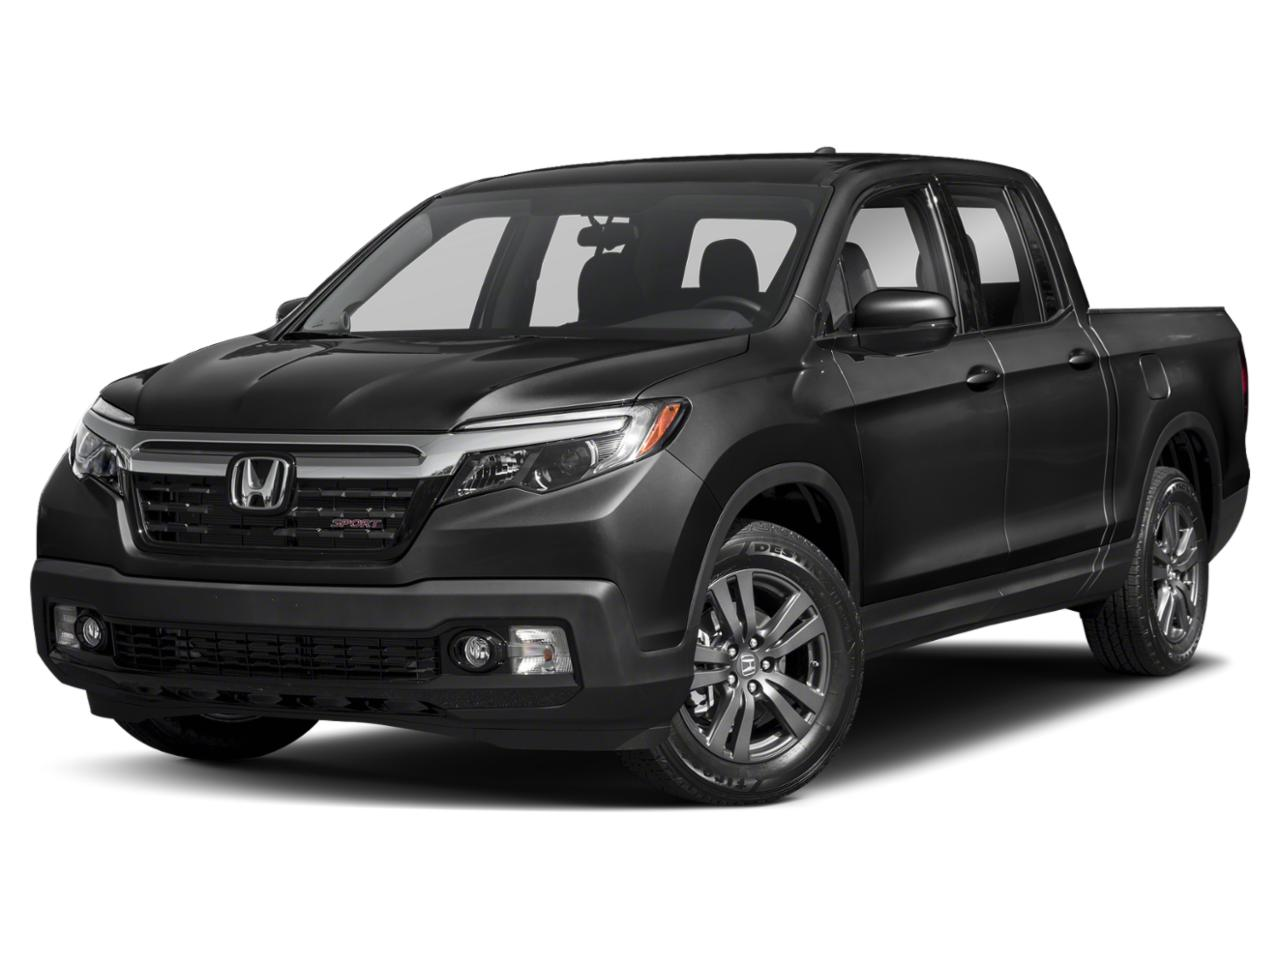 2019 Honda Ridgeline Vehicle Photo in Pleasanton, CA 94588